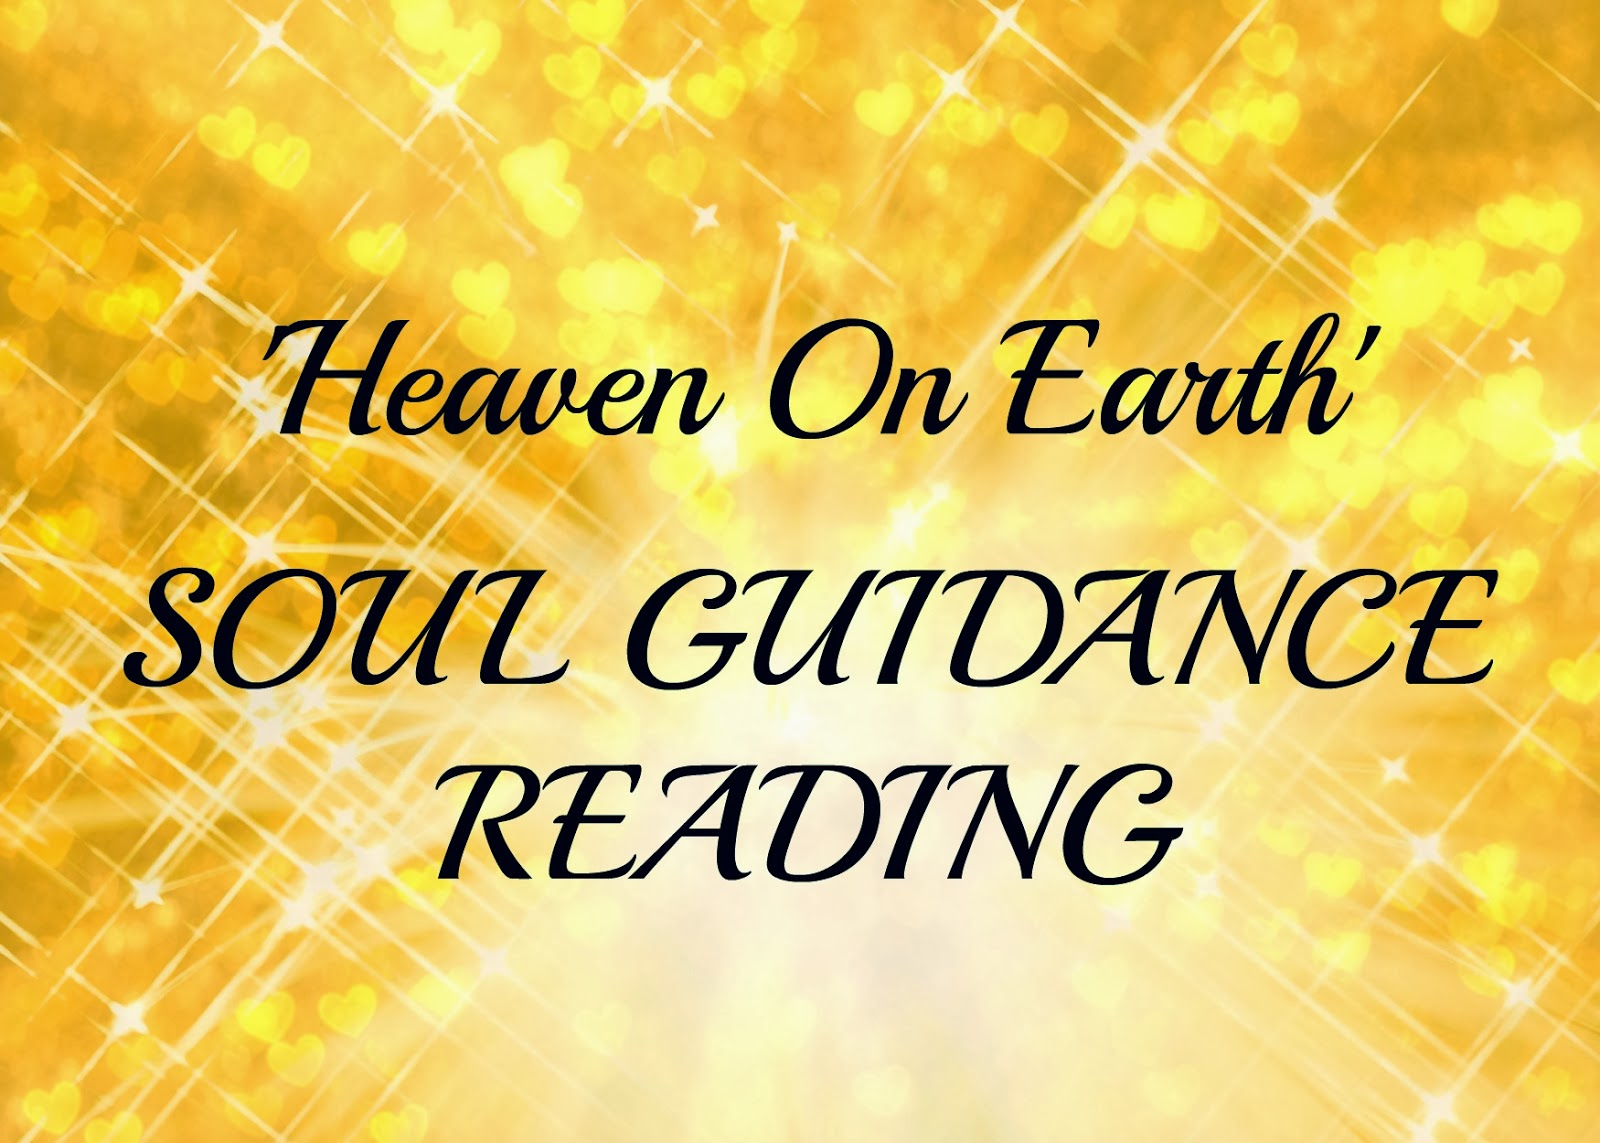 Heaven On Earth Soul Guidance Reading